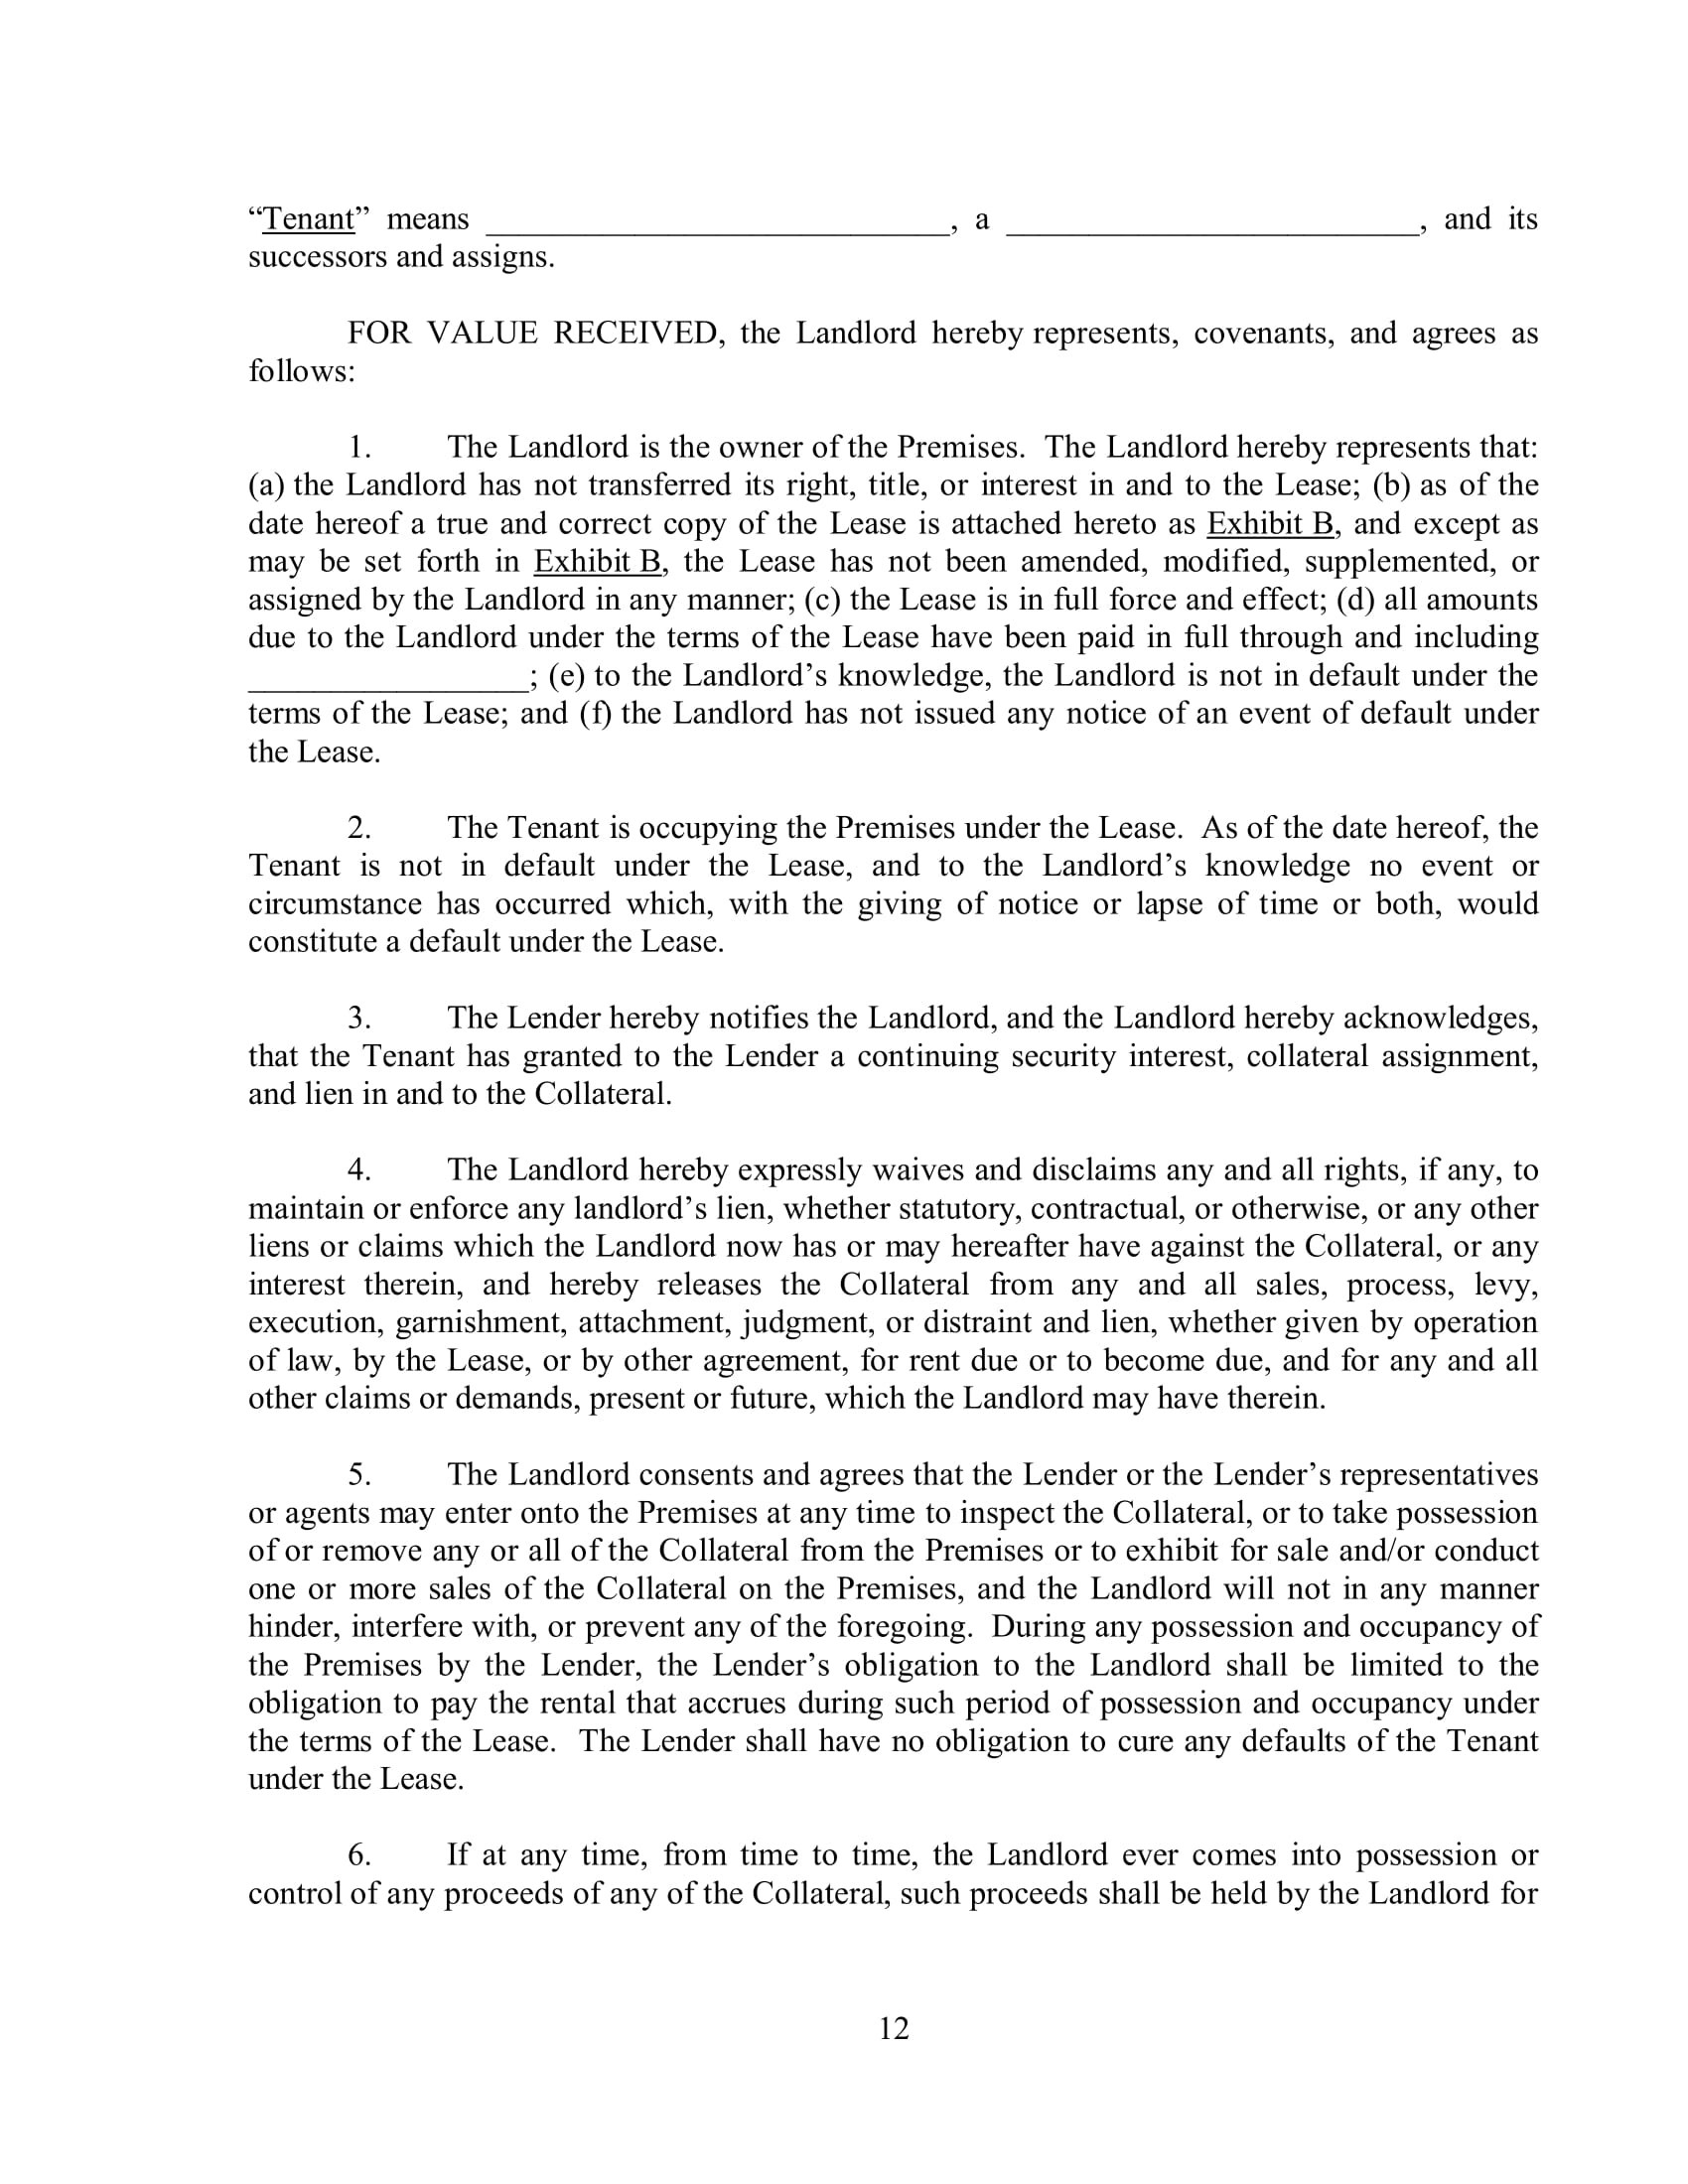 Landlord Subordination Agreement Contract Form